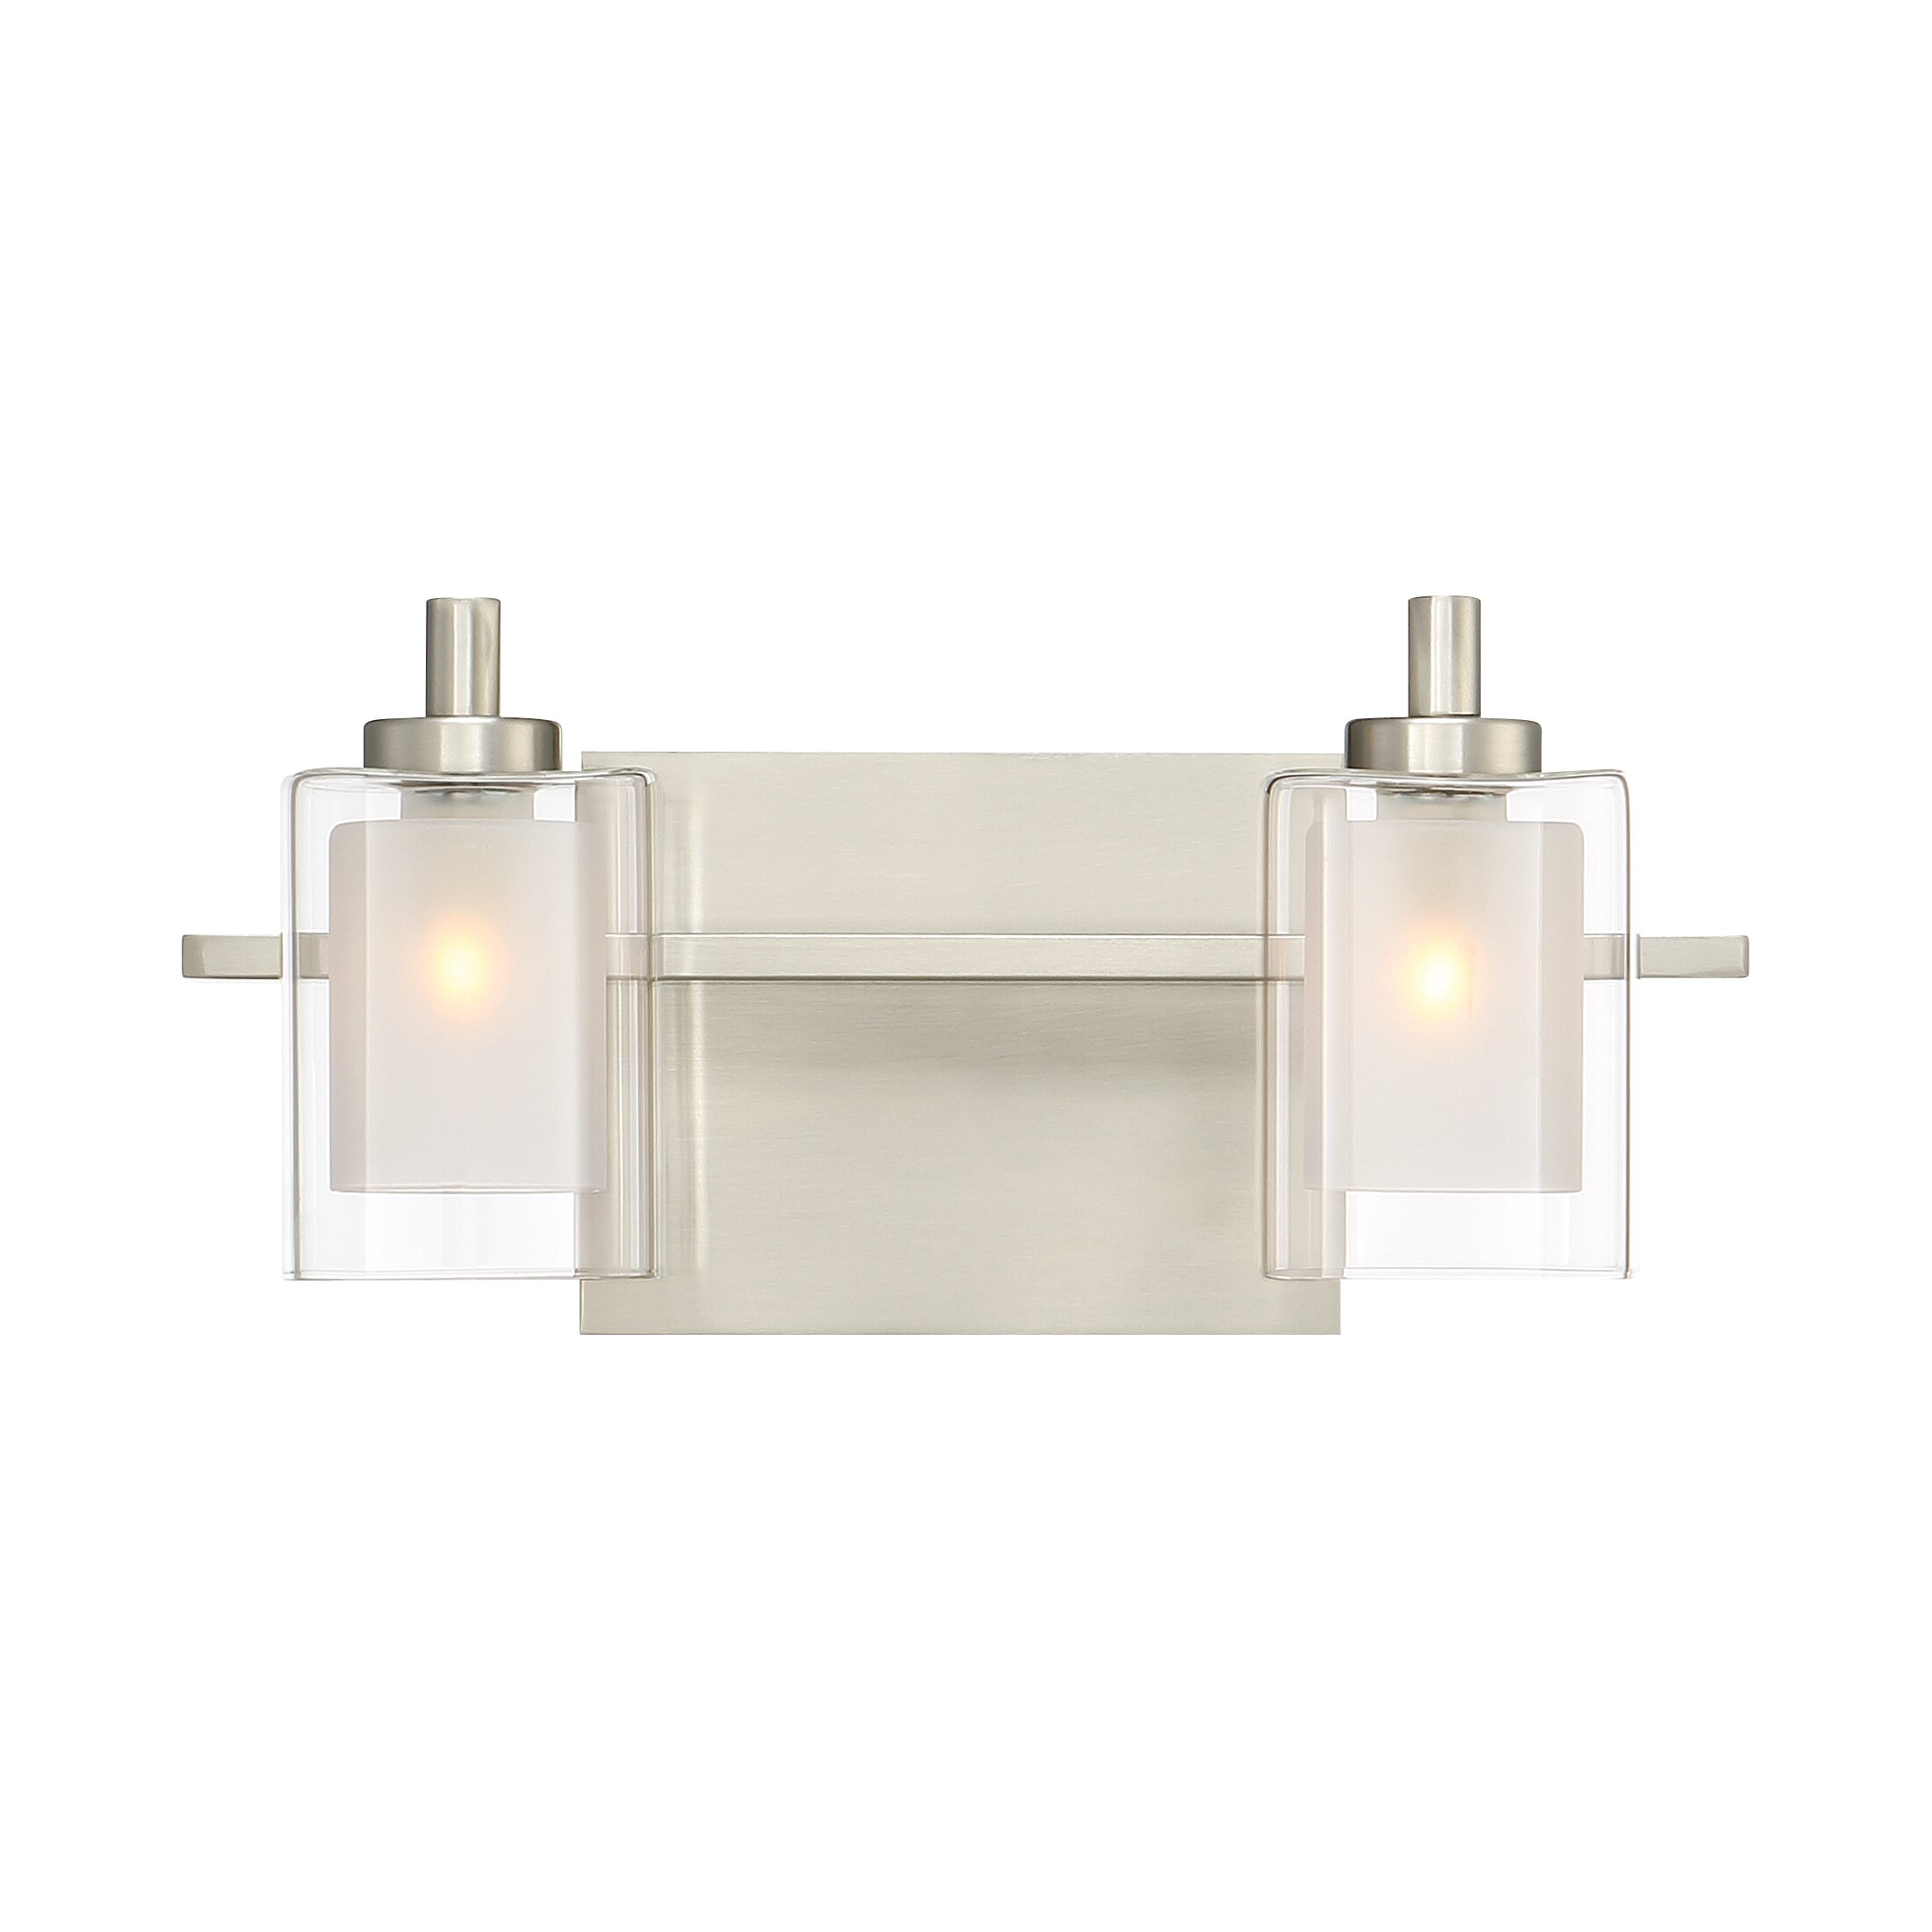 Bathroom vanity lights brushed nickel - Wade Logan Reg Aldrich 2 Light Vanity Light